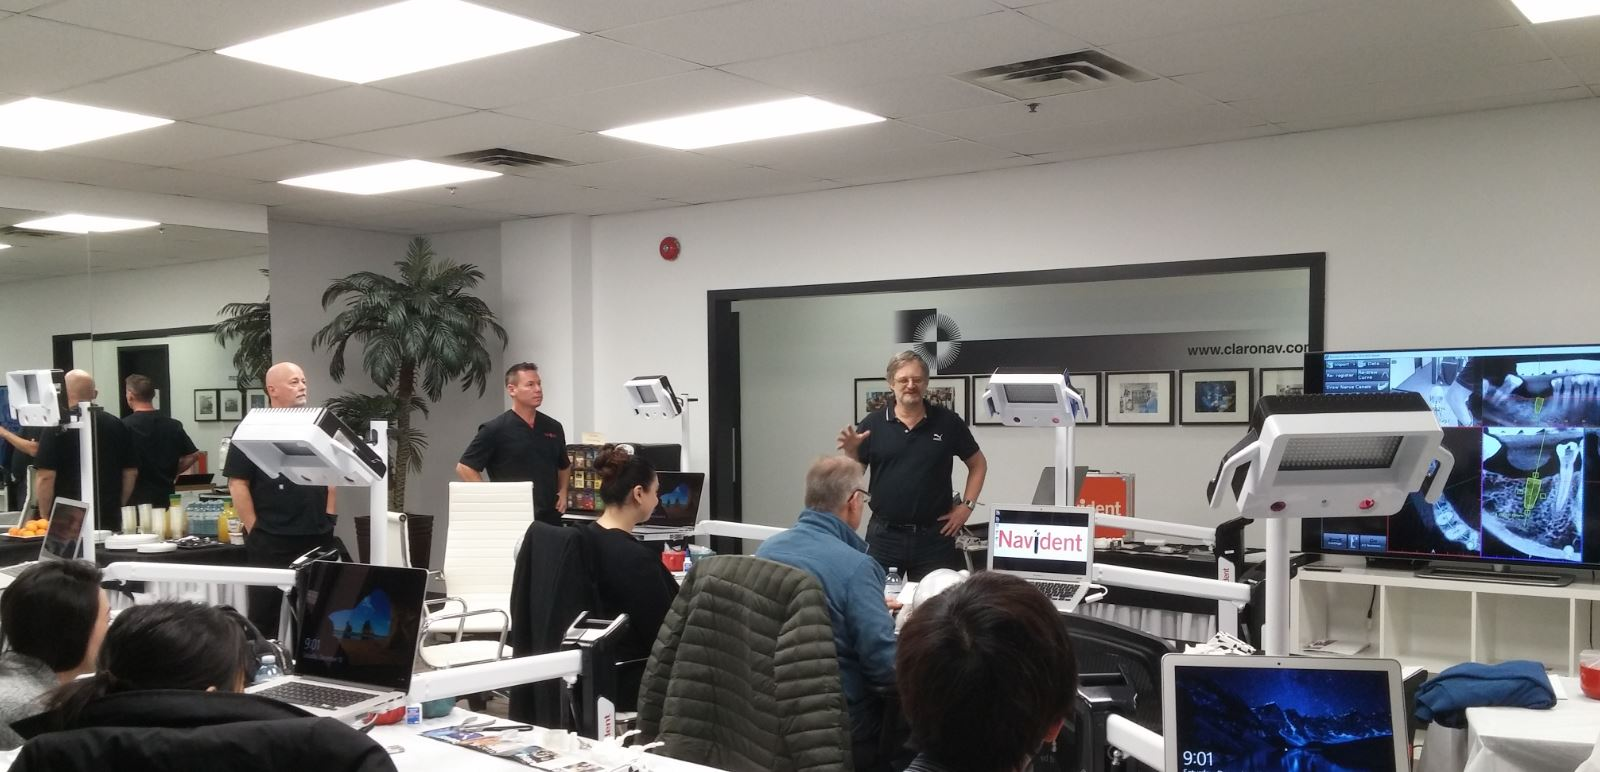 Newsletter issue 11 claronav to learn more about the course please visit httpdnsaronavcourses intro to navident certification toronto home office 1betcityfo Gallery